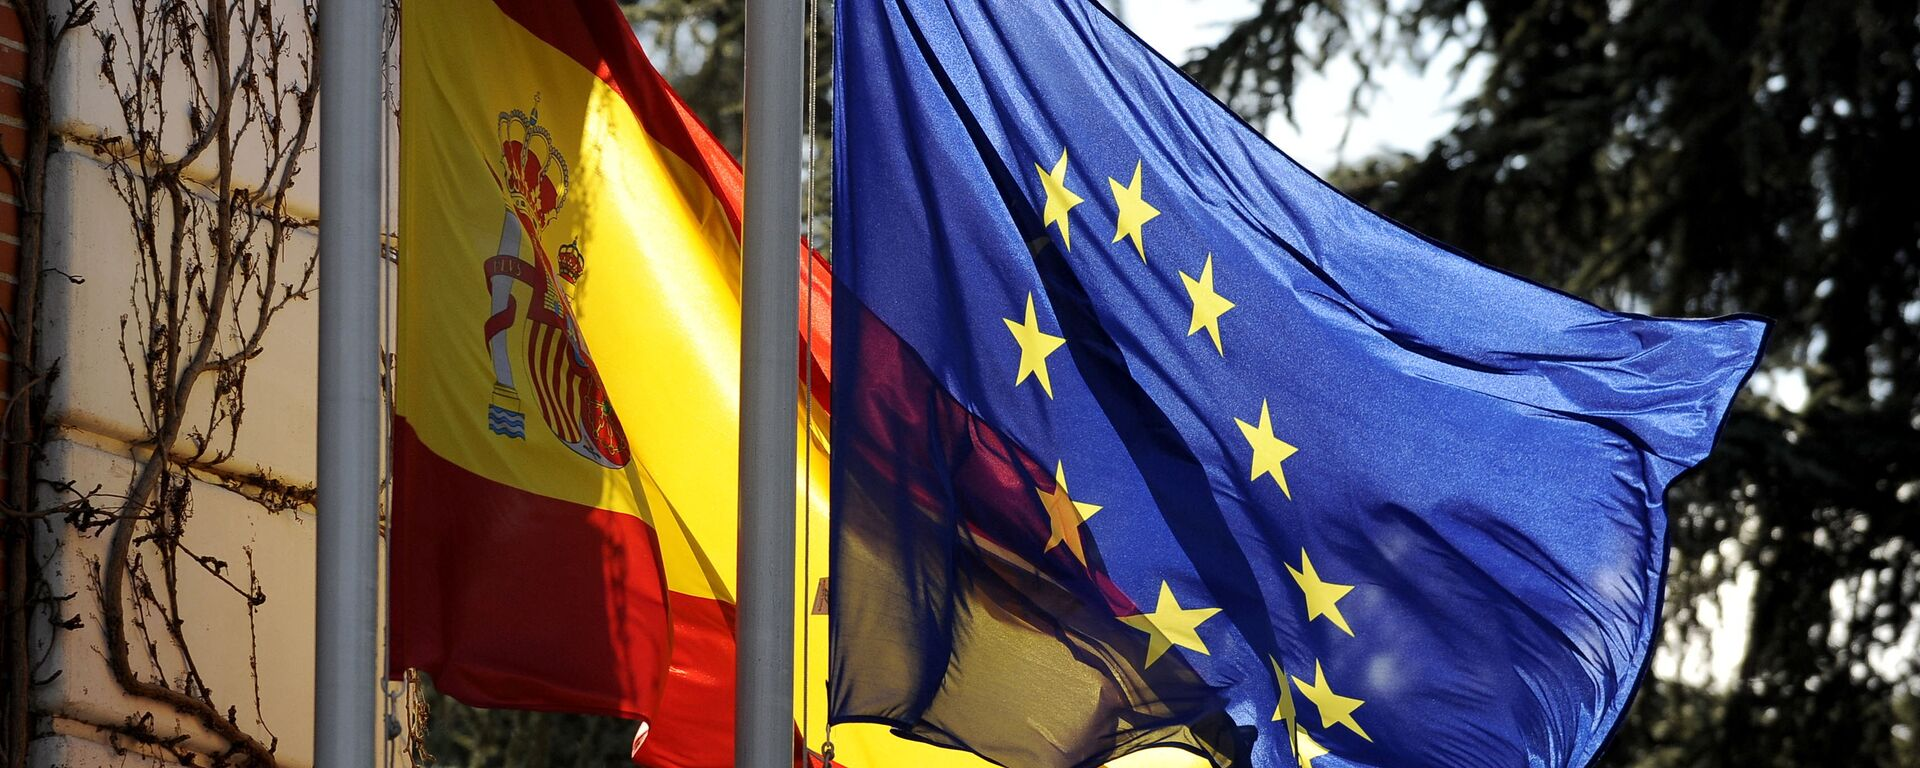 The Spanish flag and the European Union flag fly in front of the Moncloa palace in Madrid on January 8, 2010 - Sputnik Mundo, 1920, 16.06.2021